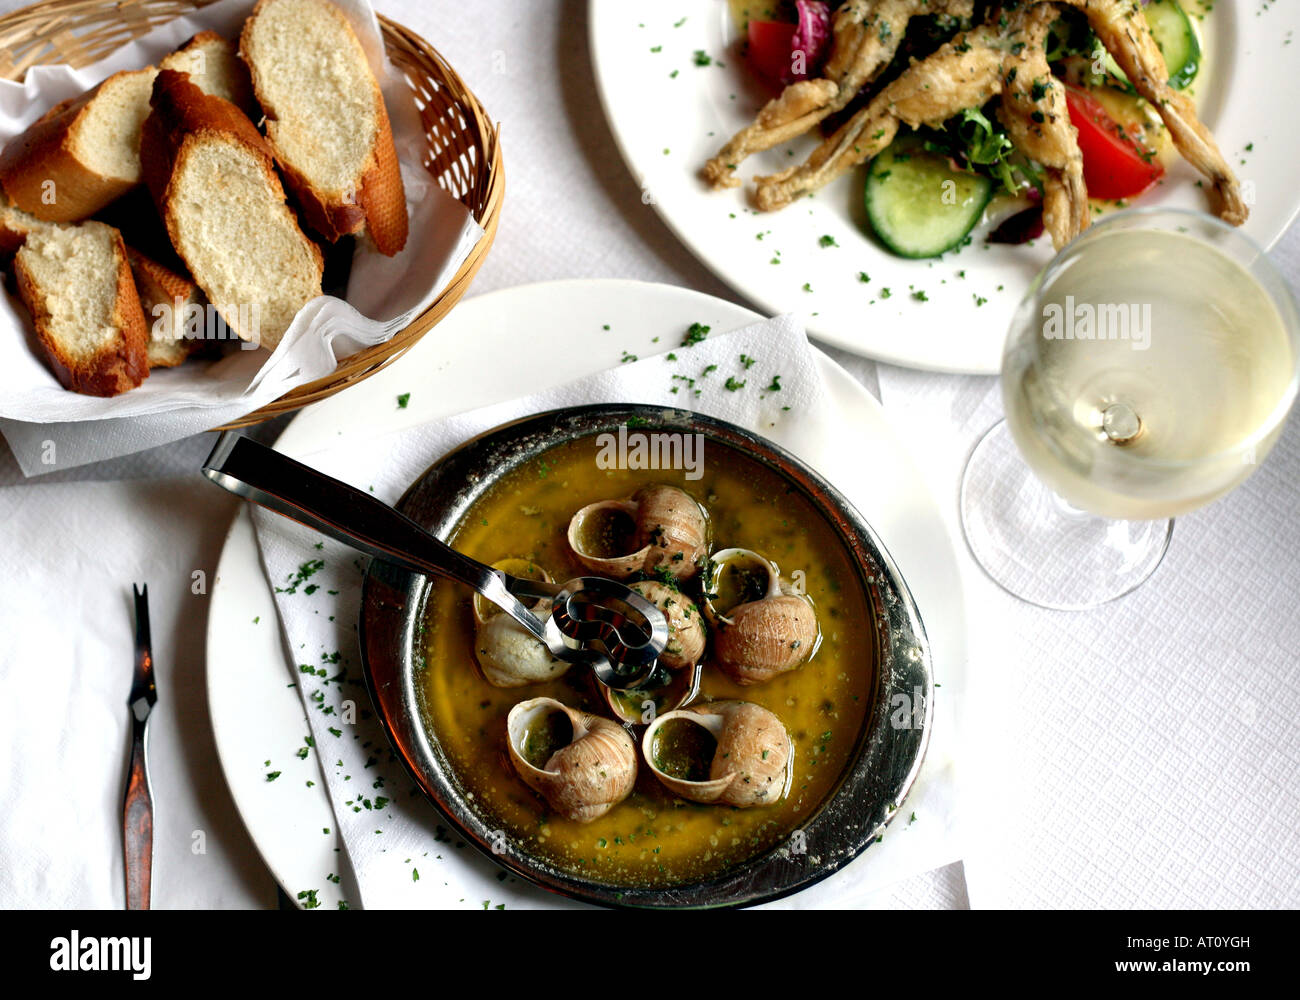 National dishes of France. Frog legs in French. French onion soup. Croissants. Baguette 59